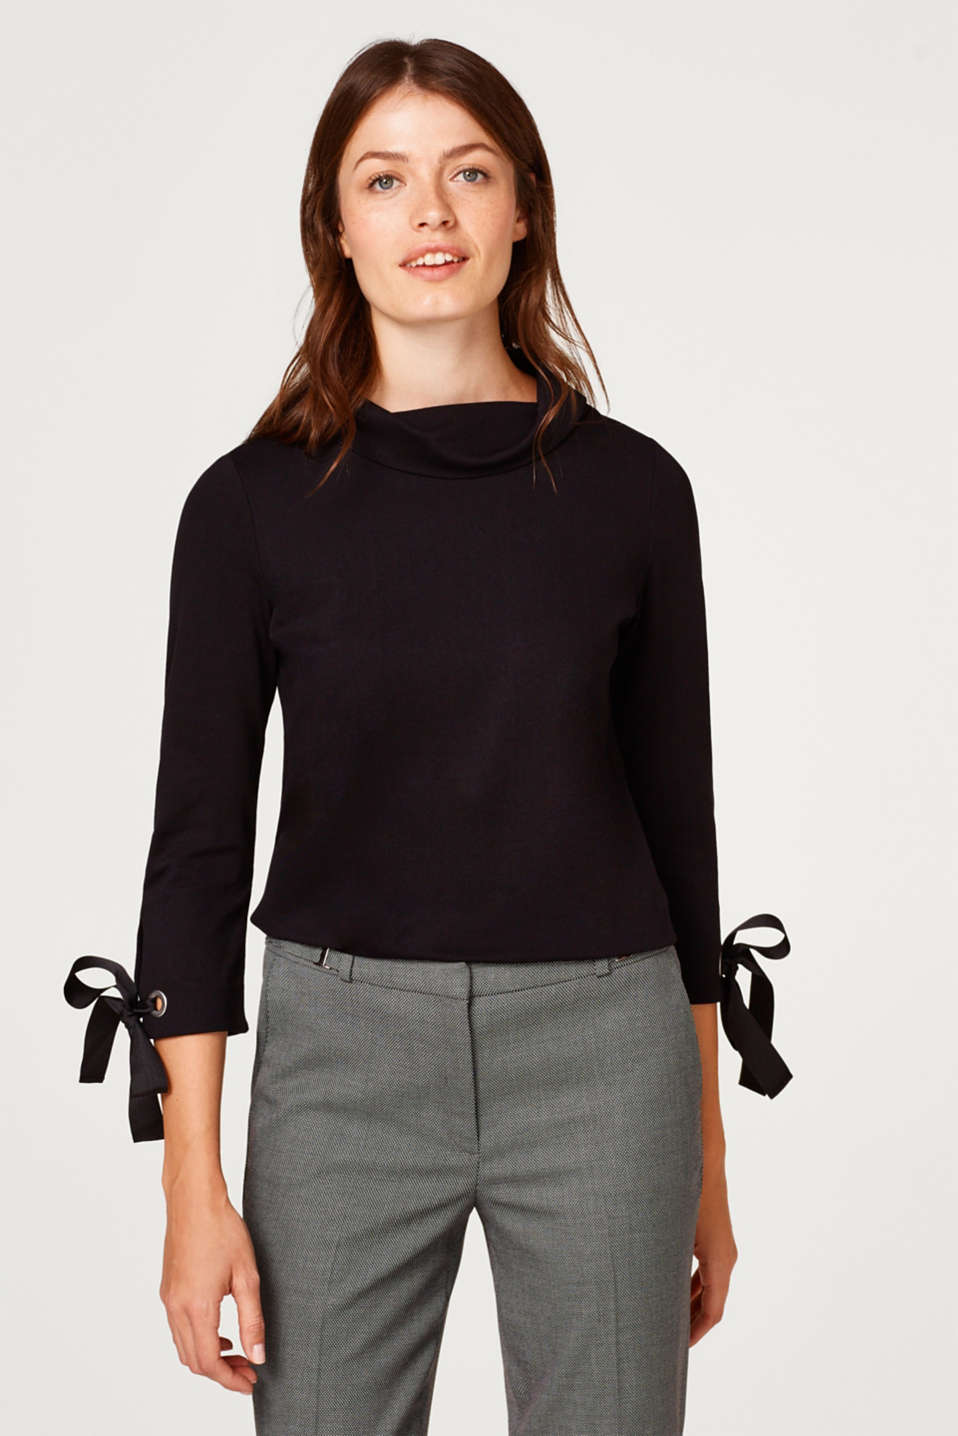 Esprit - Top with a polo neck and bow details